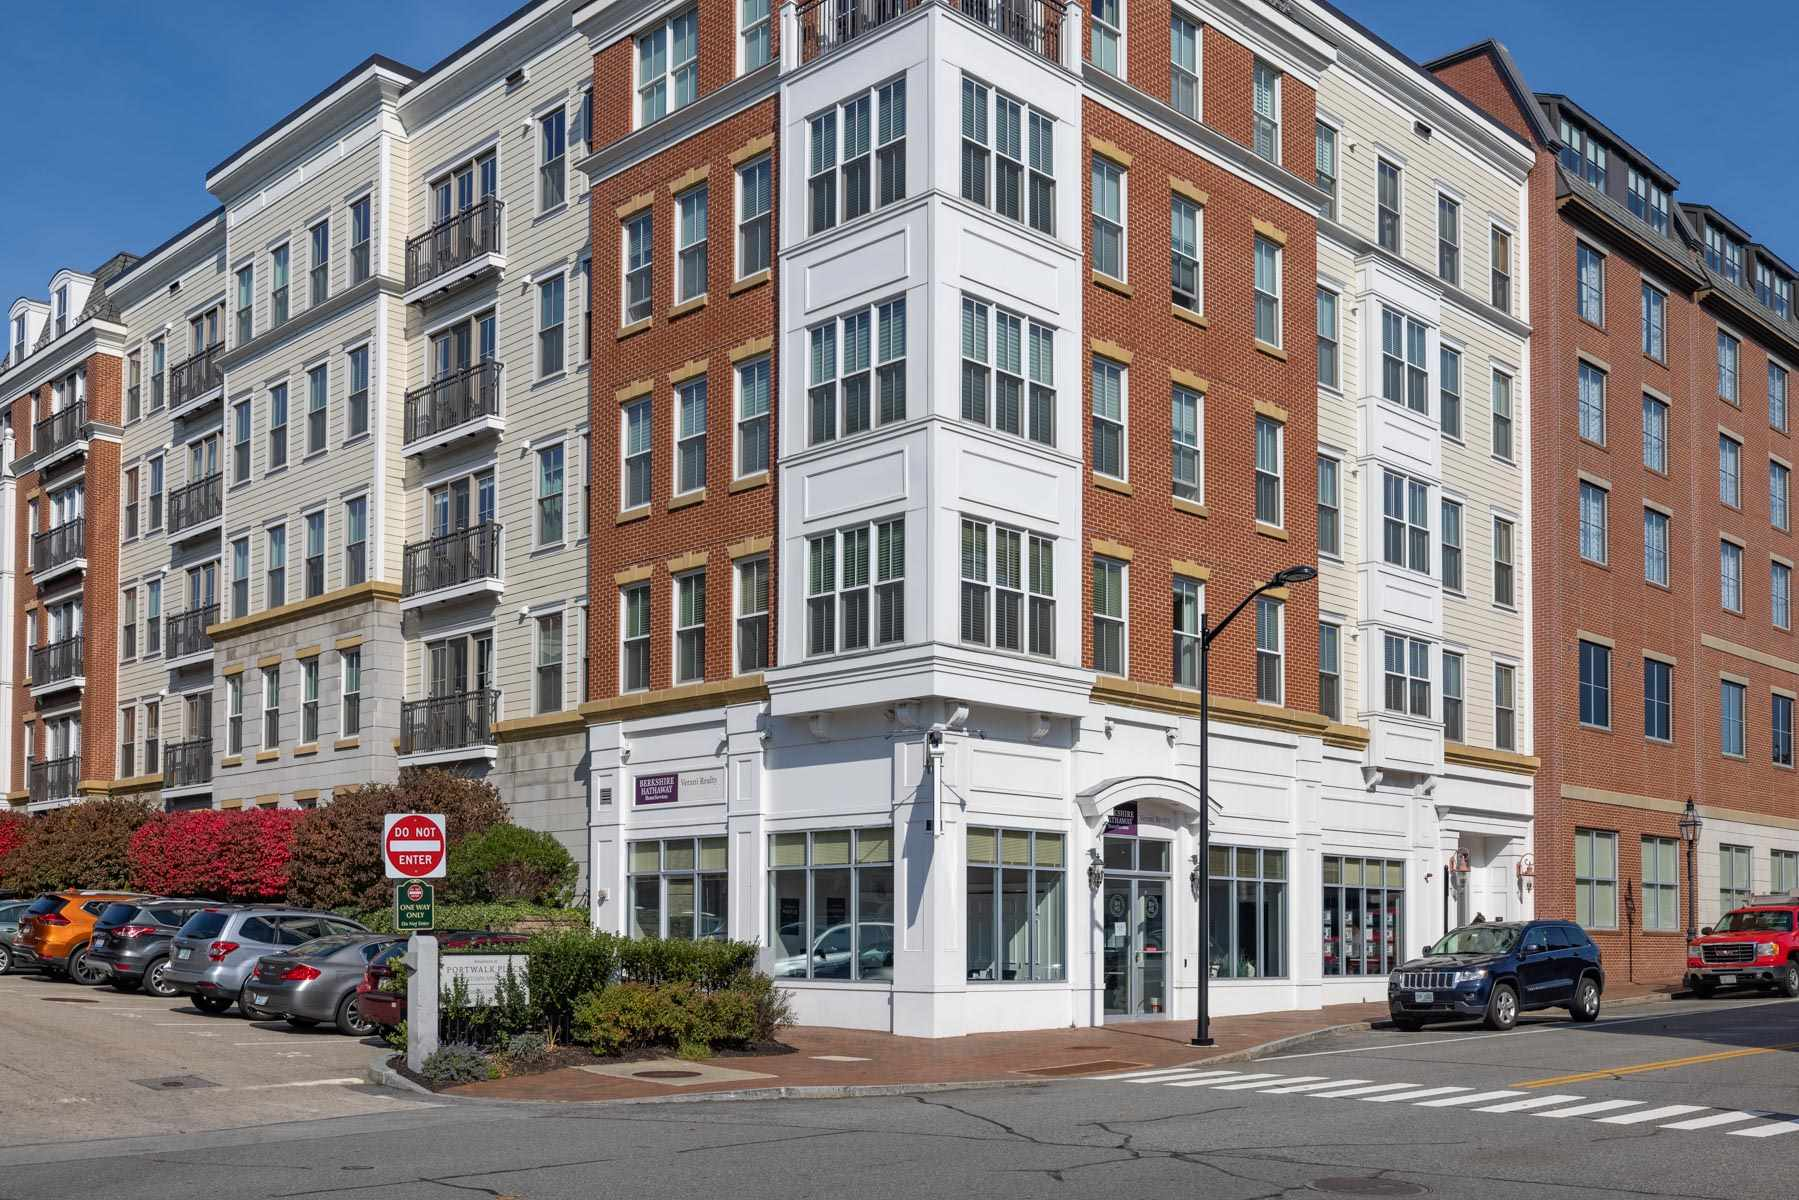 Photo of 77 Hanover Street Portsmouth NH 03801